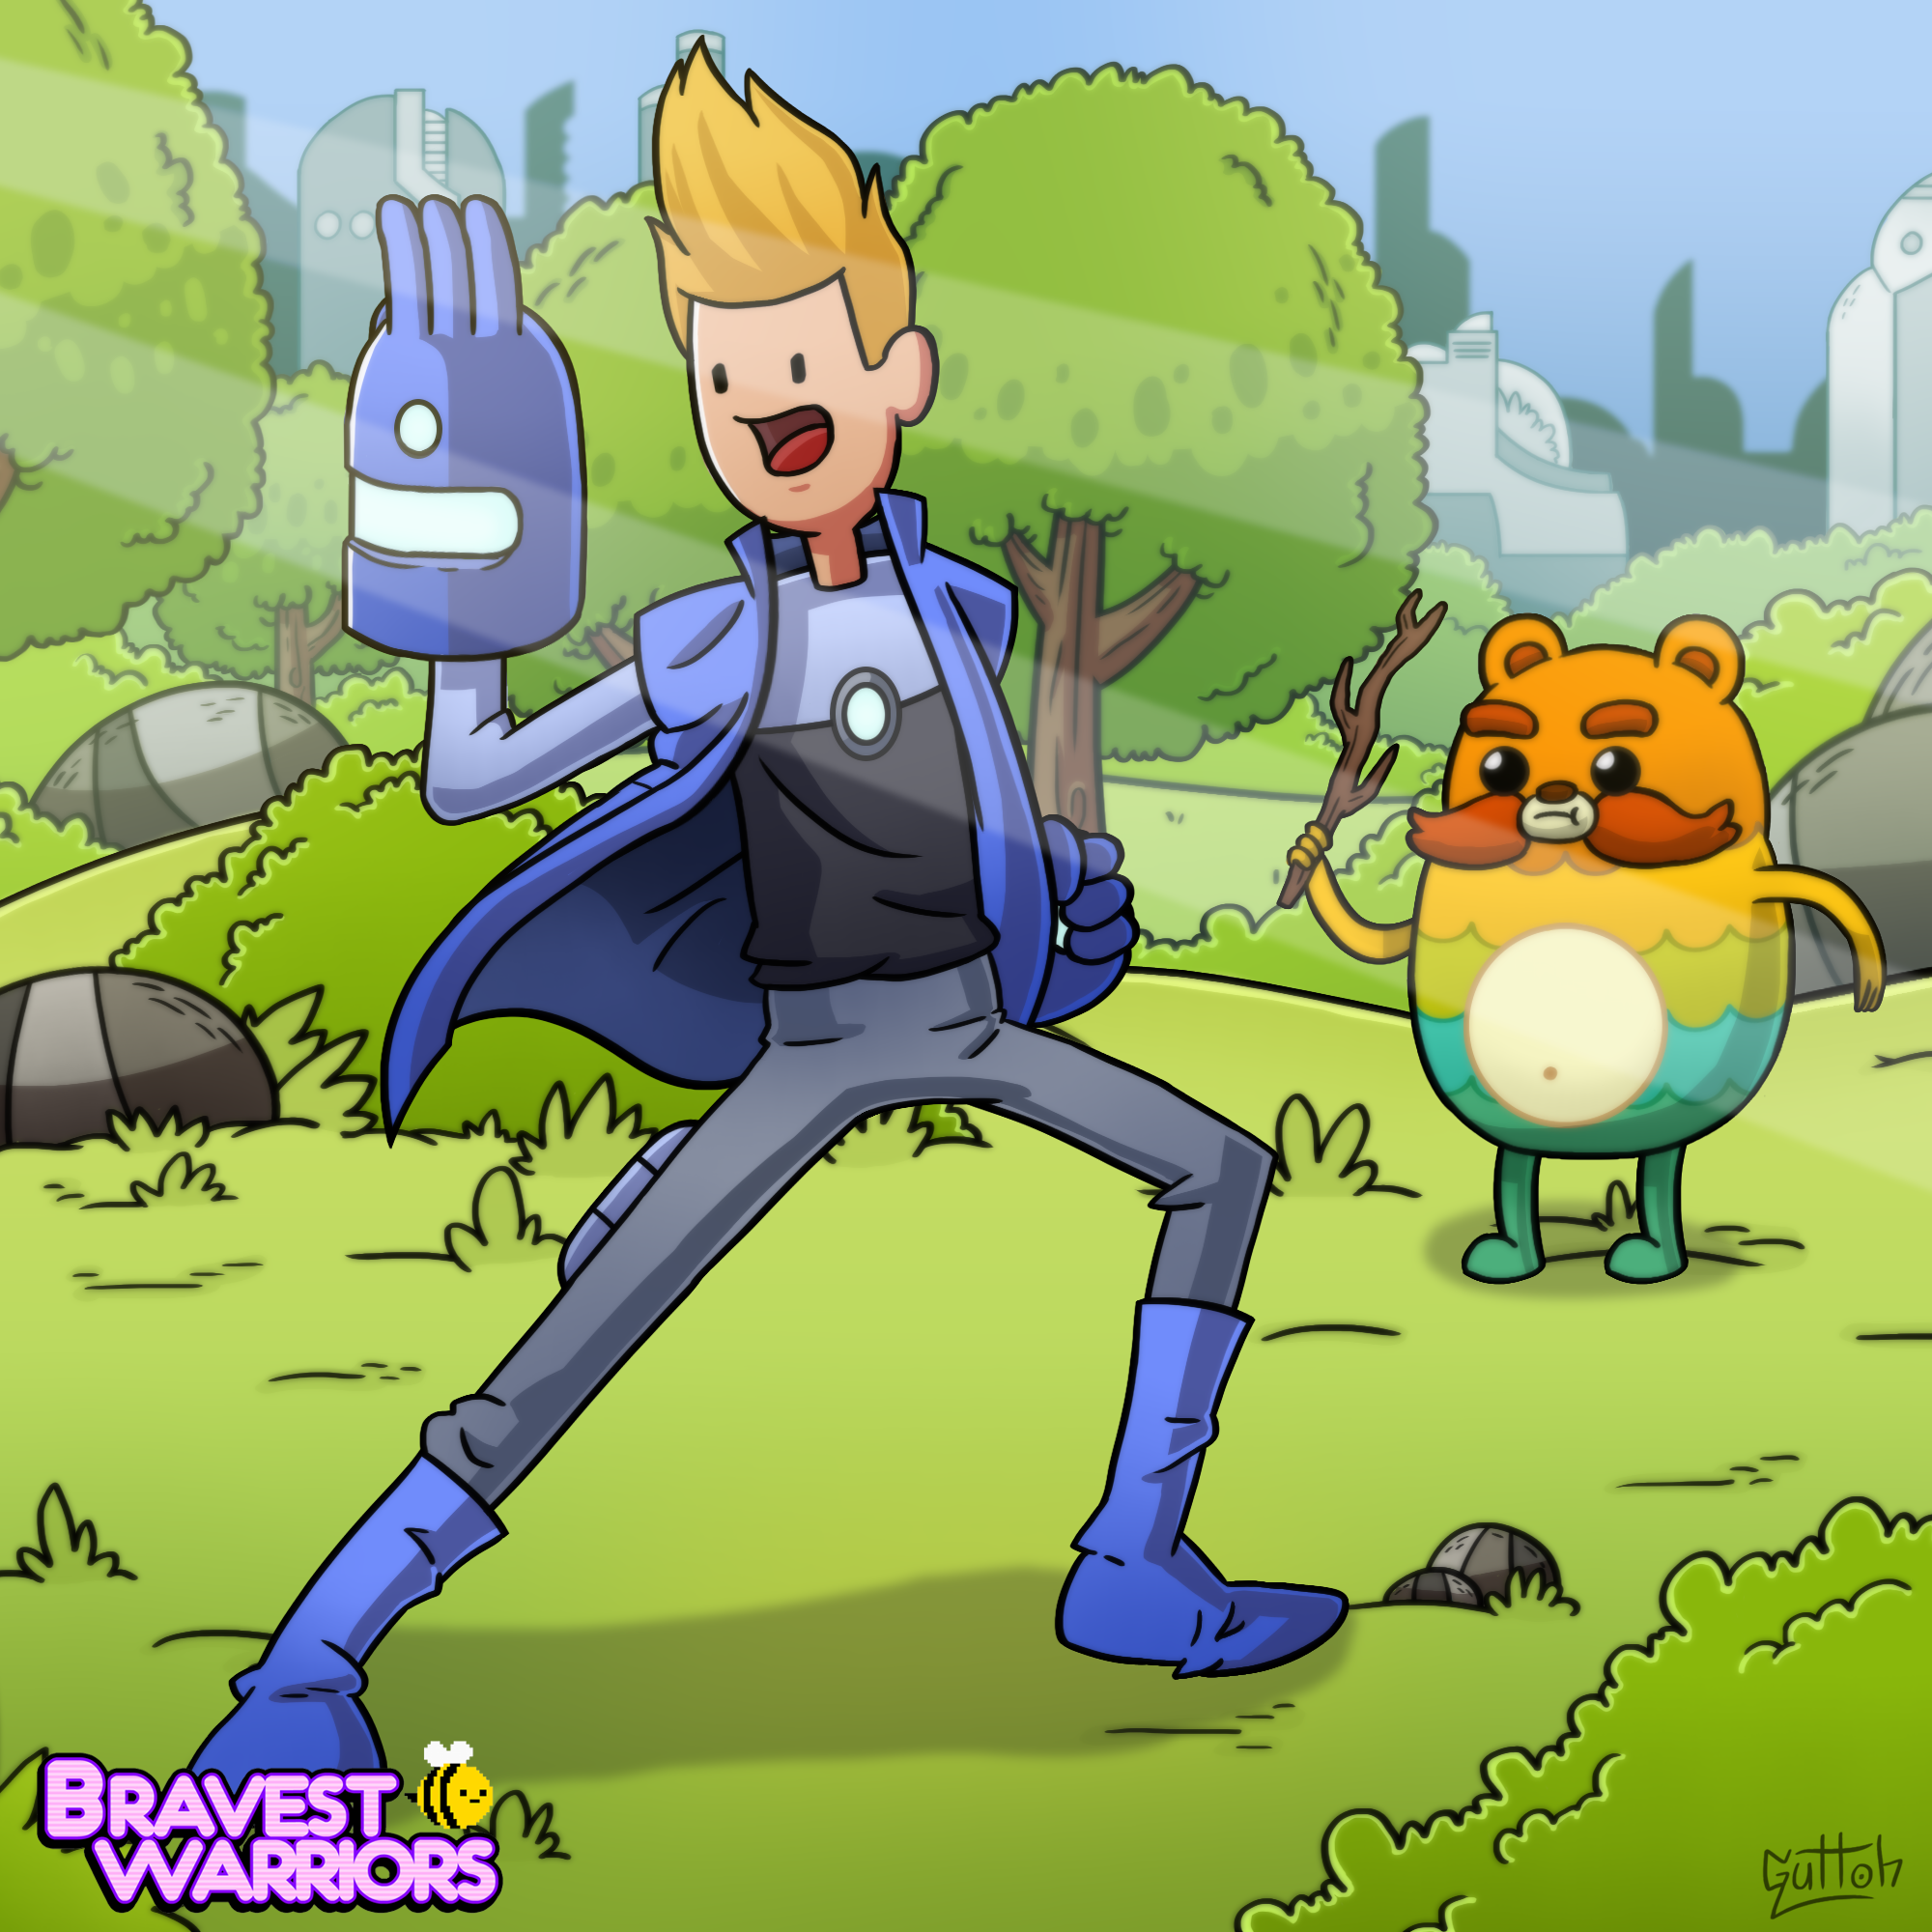 Bravest Warriors Chris